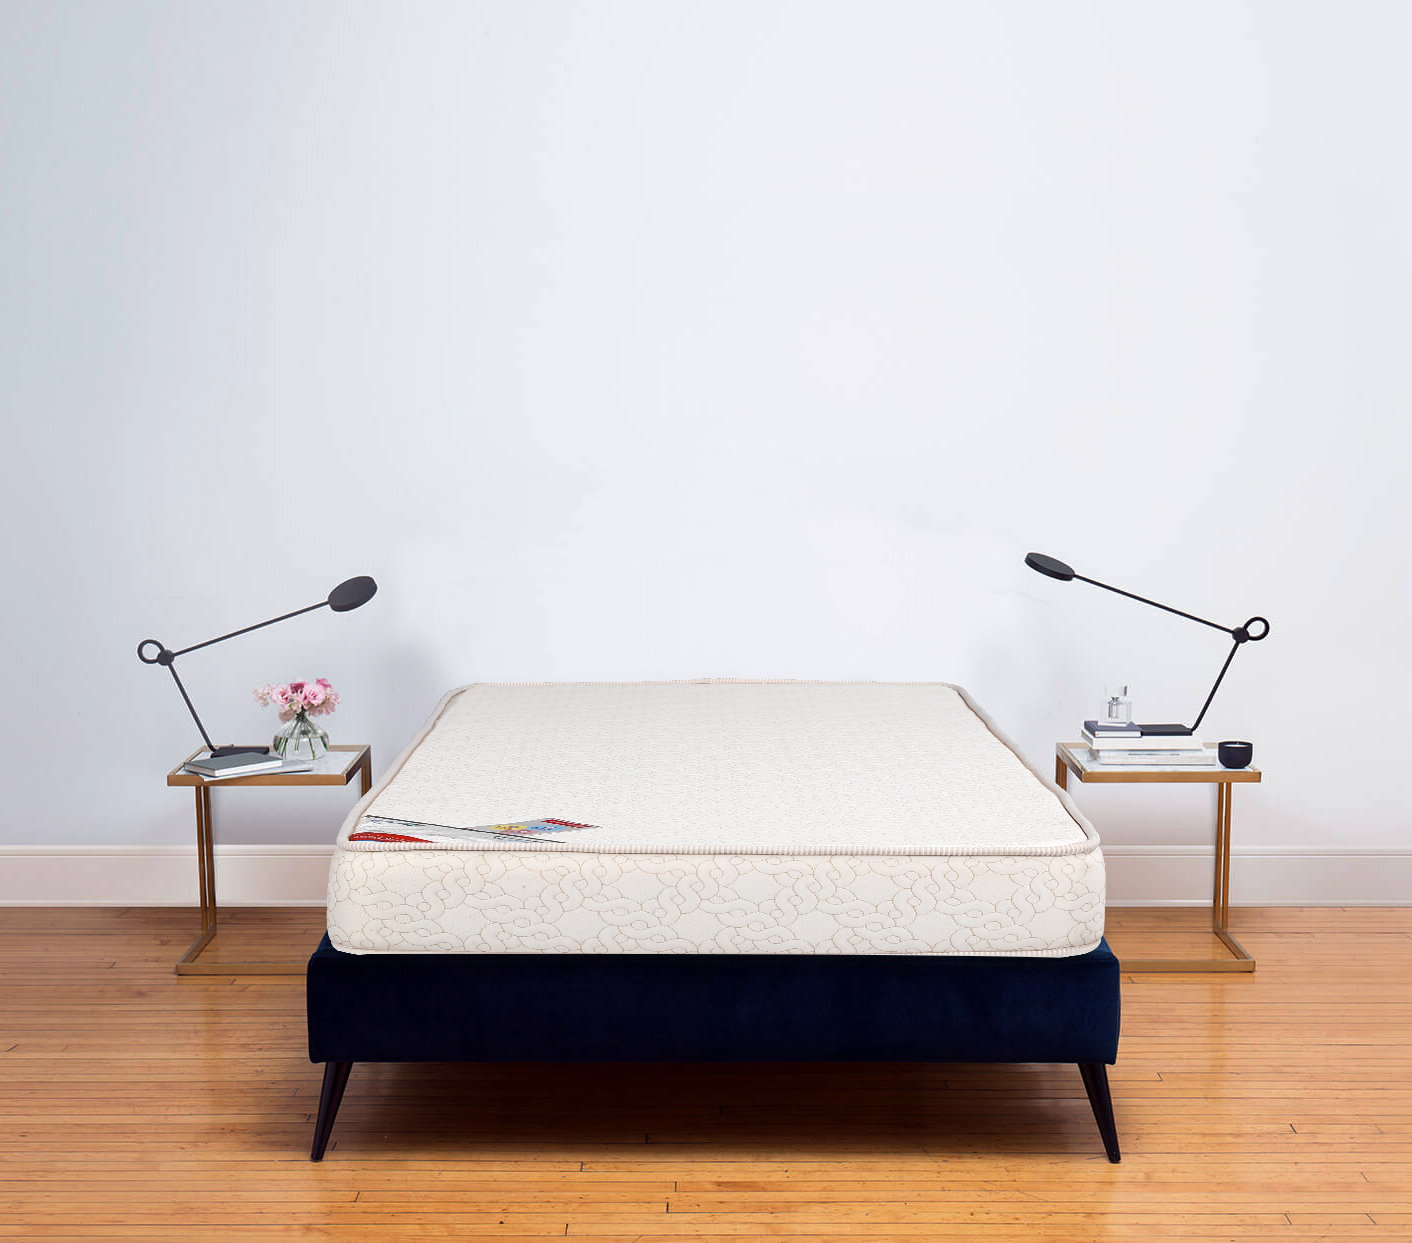 Spinepro Coir & Foam Single Bed Mattress (75*36*5) in Cream Colour by HomeTown